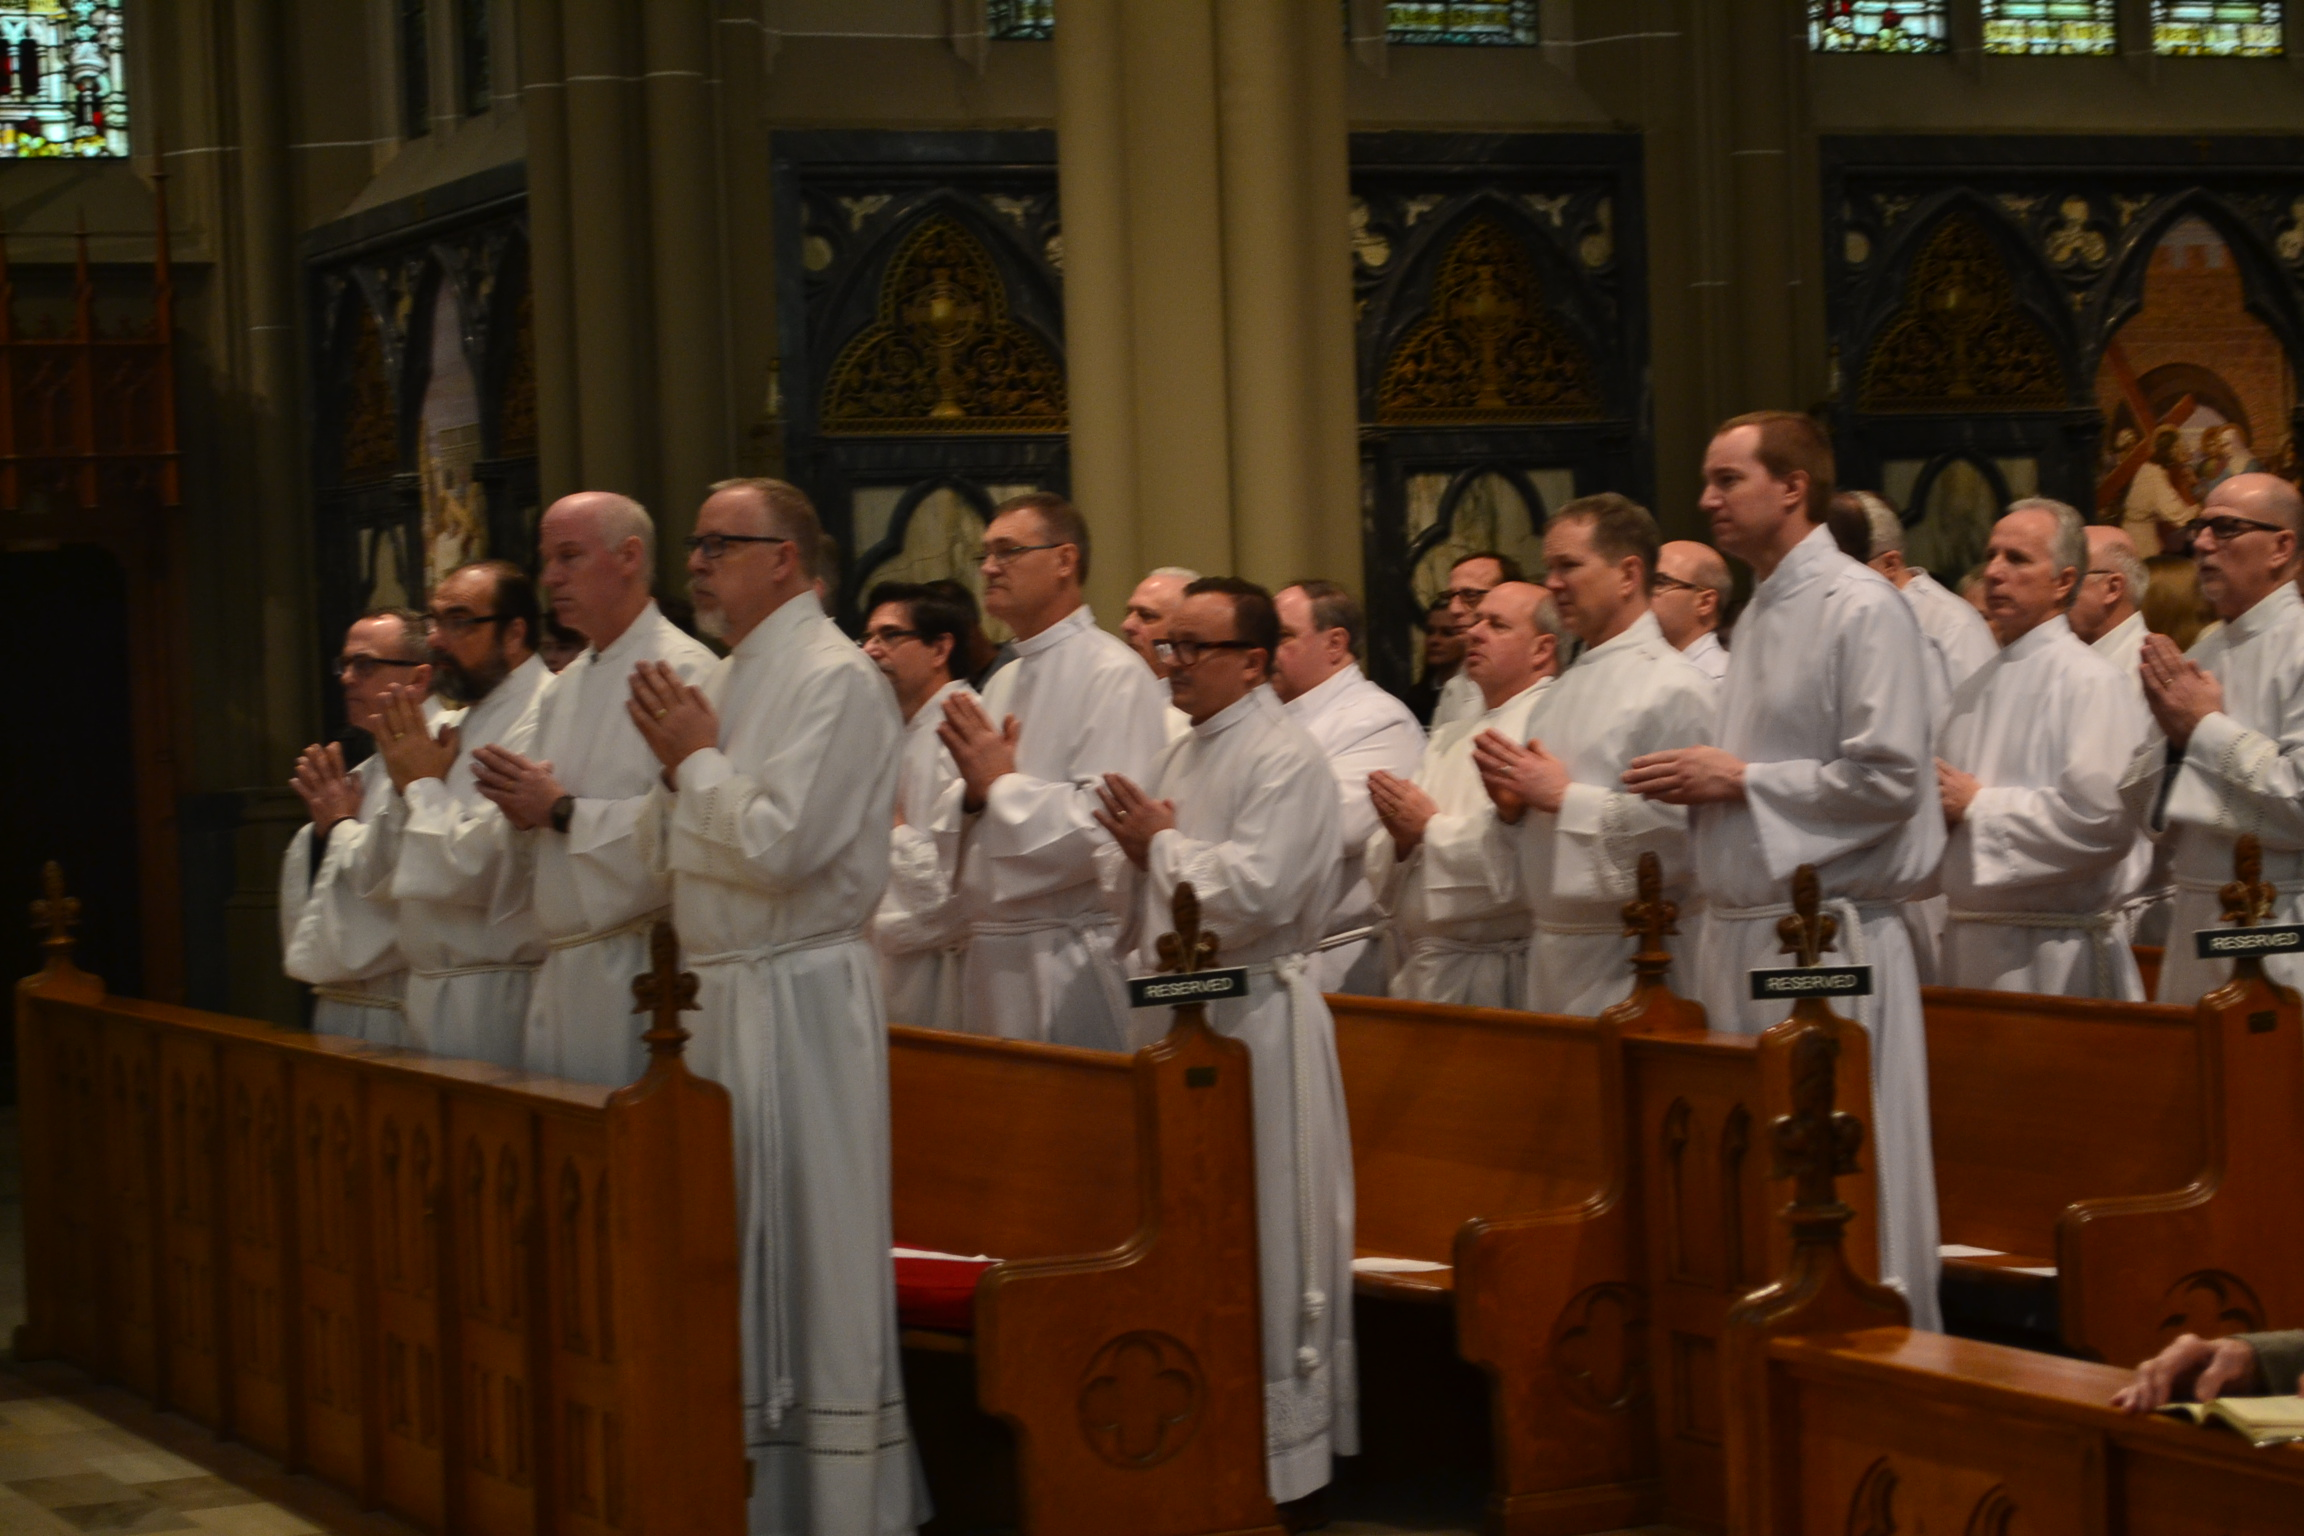 Men being introduced during the Acolyte Ceremony at the Basilica in Covington KY (CT Photo/Greg Hartman)